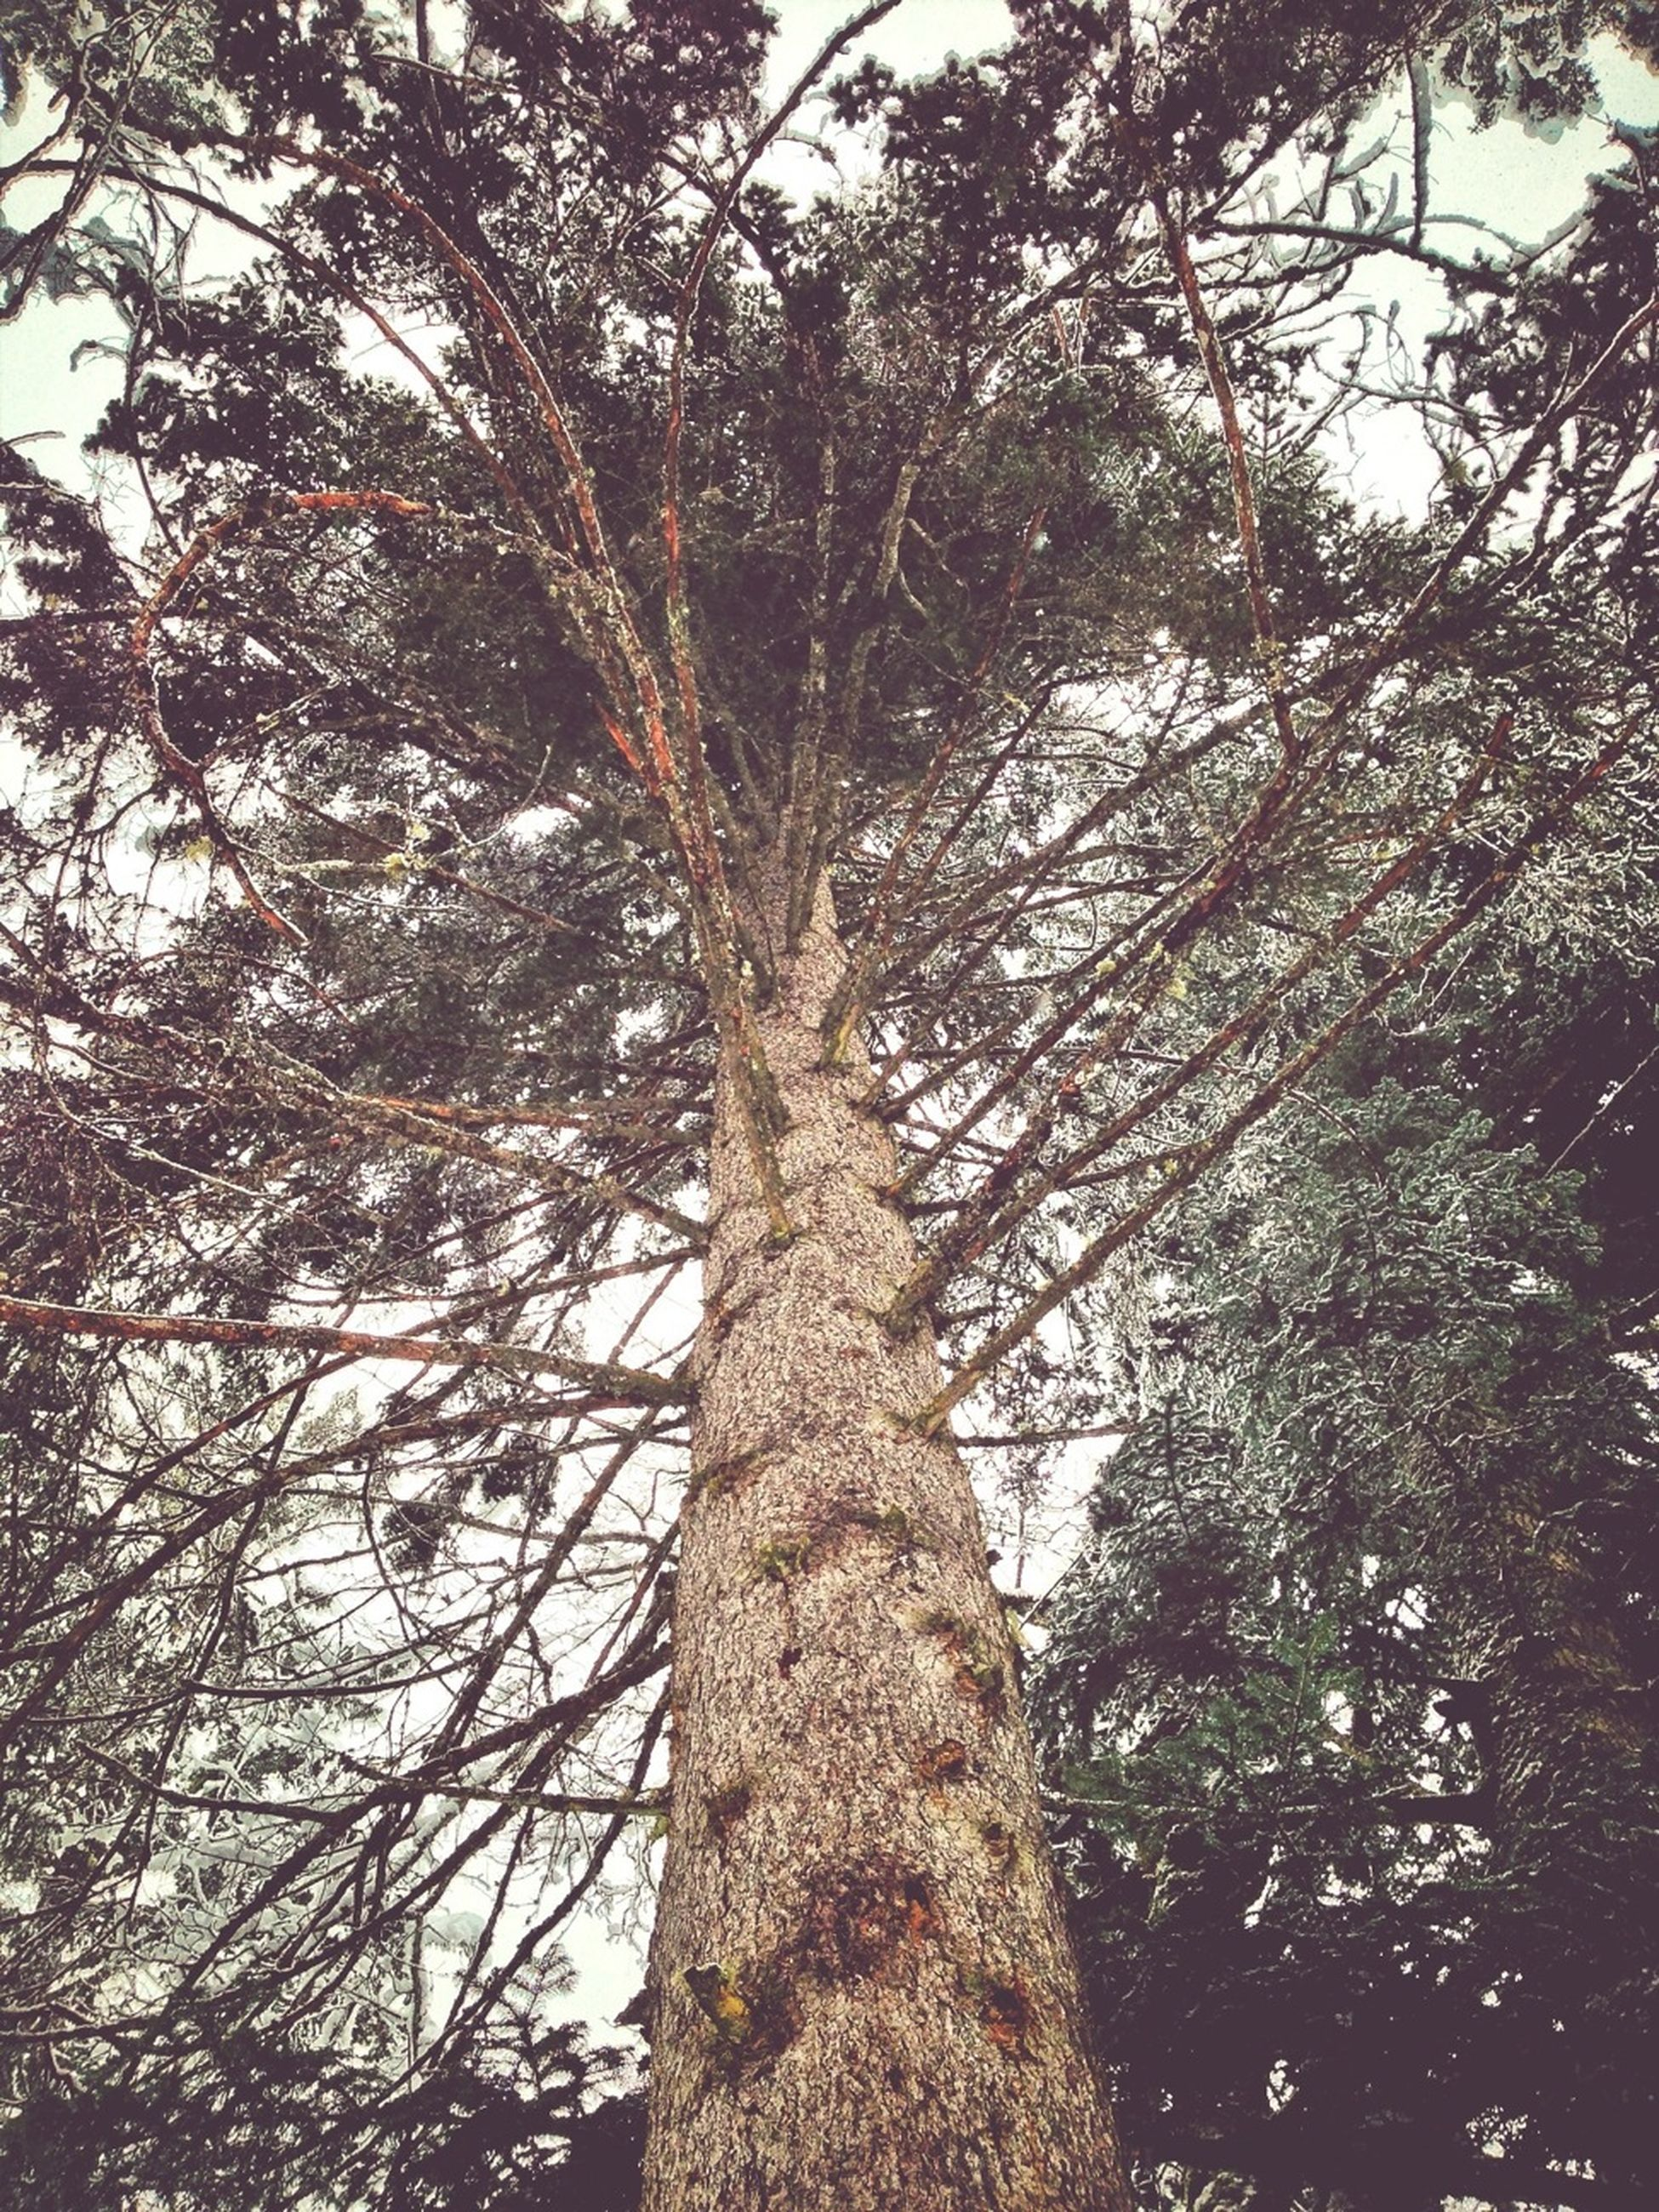 tree, low angle view, tree trunk, branch, growth, tranquility, nature, forest, sky, beauty in nature, woodland, day, outdoors, bare tree, no people, scenics, tranquil scene, backgrounds, tall - high, full frame